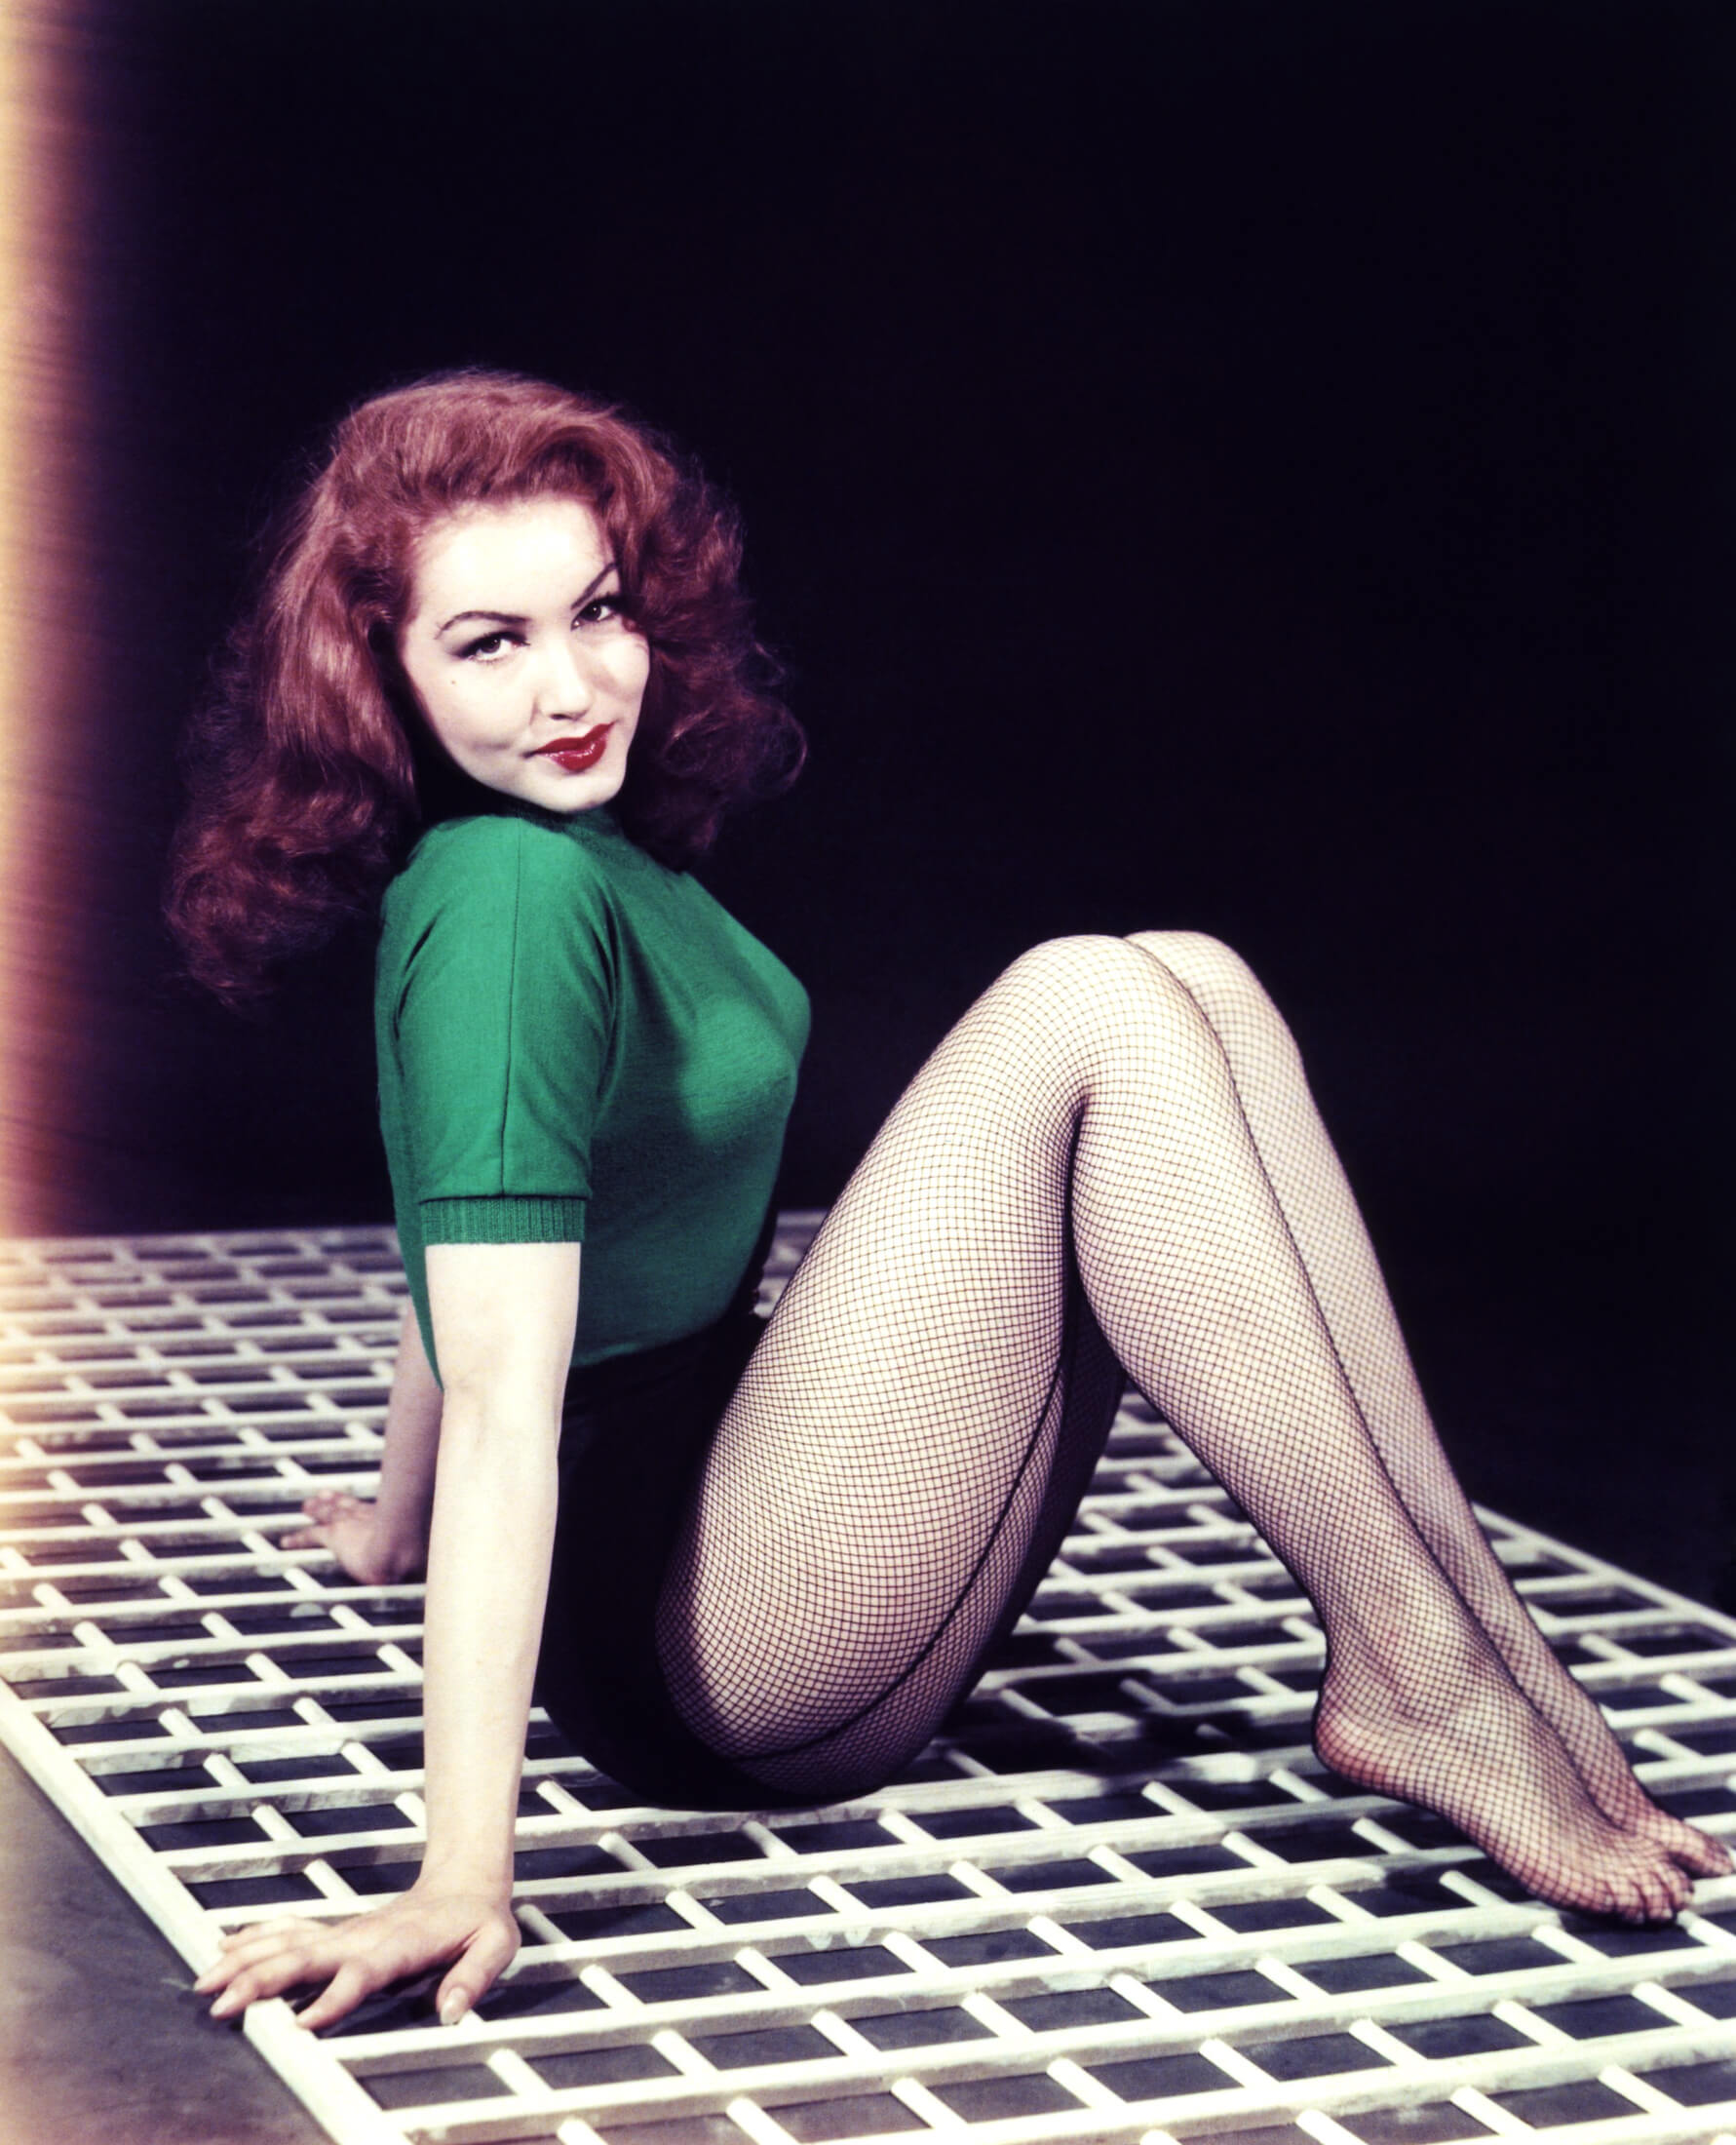 49 hot Julie Newmar photos will make you want her now